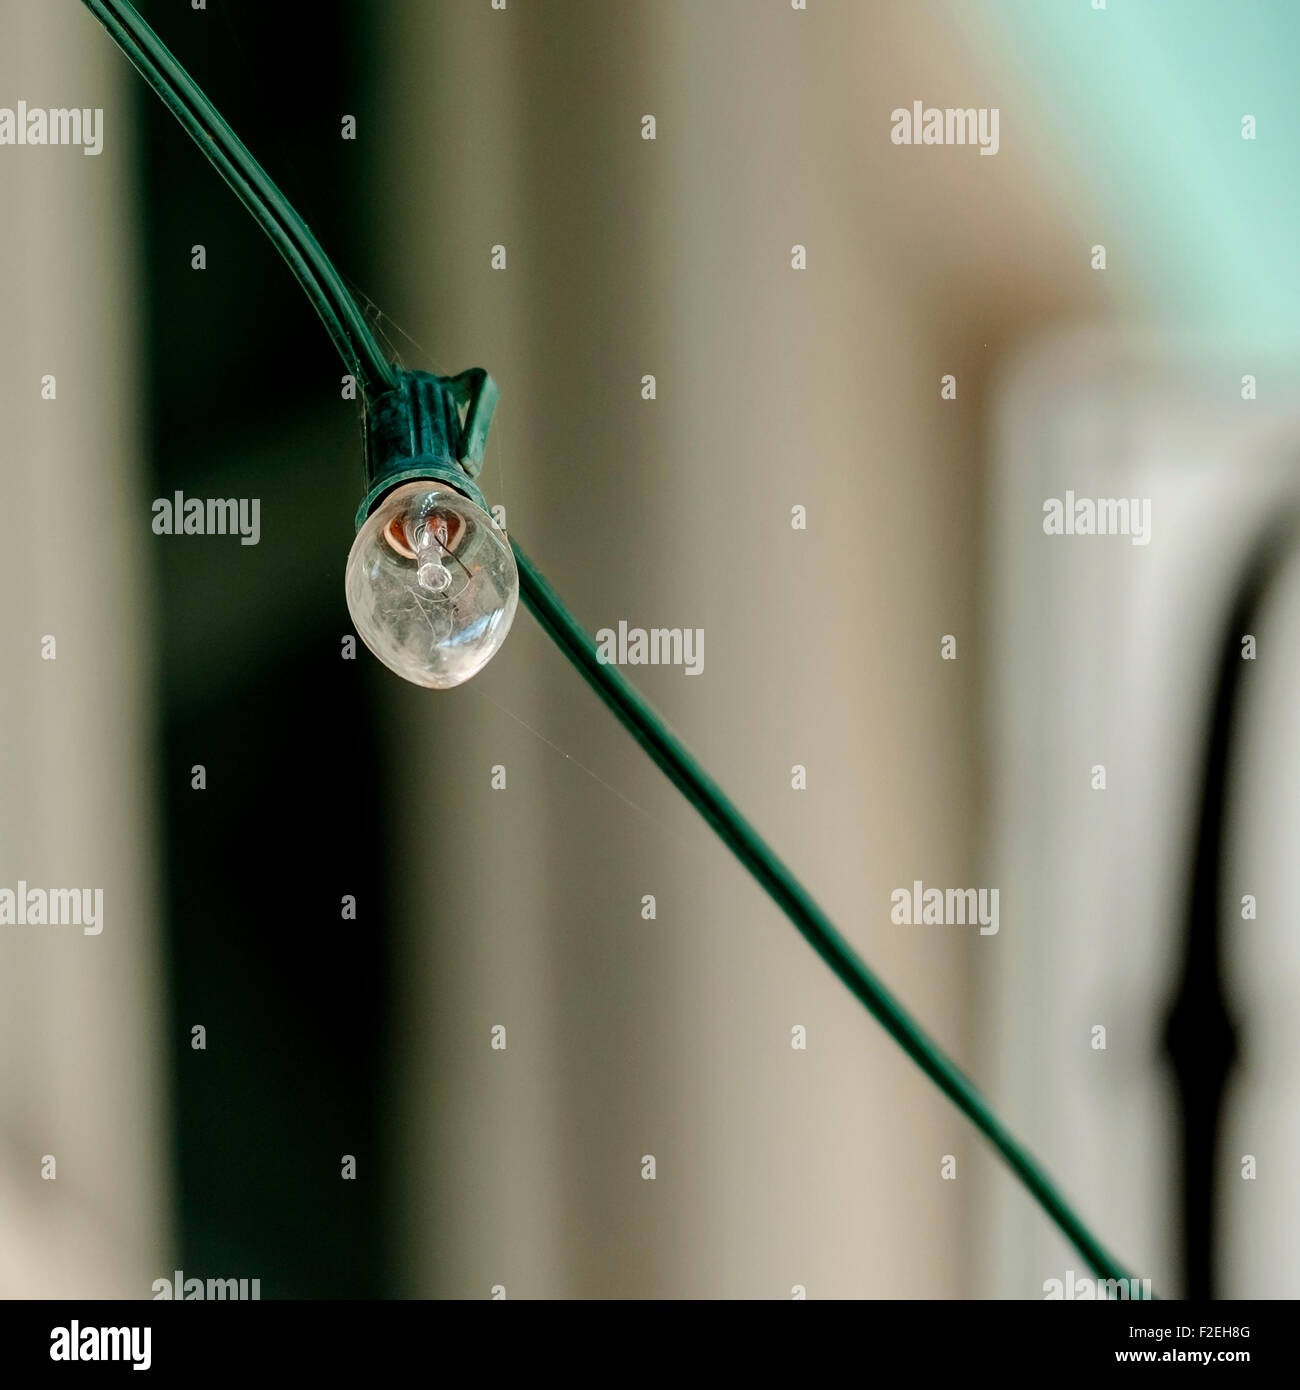 Illuminating Wire Stock Photos Images Alamy Subaru Interior Illumination Wiring A Clear Small Light Bulb On Showing The Monofilament Image